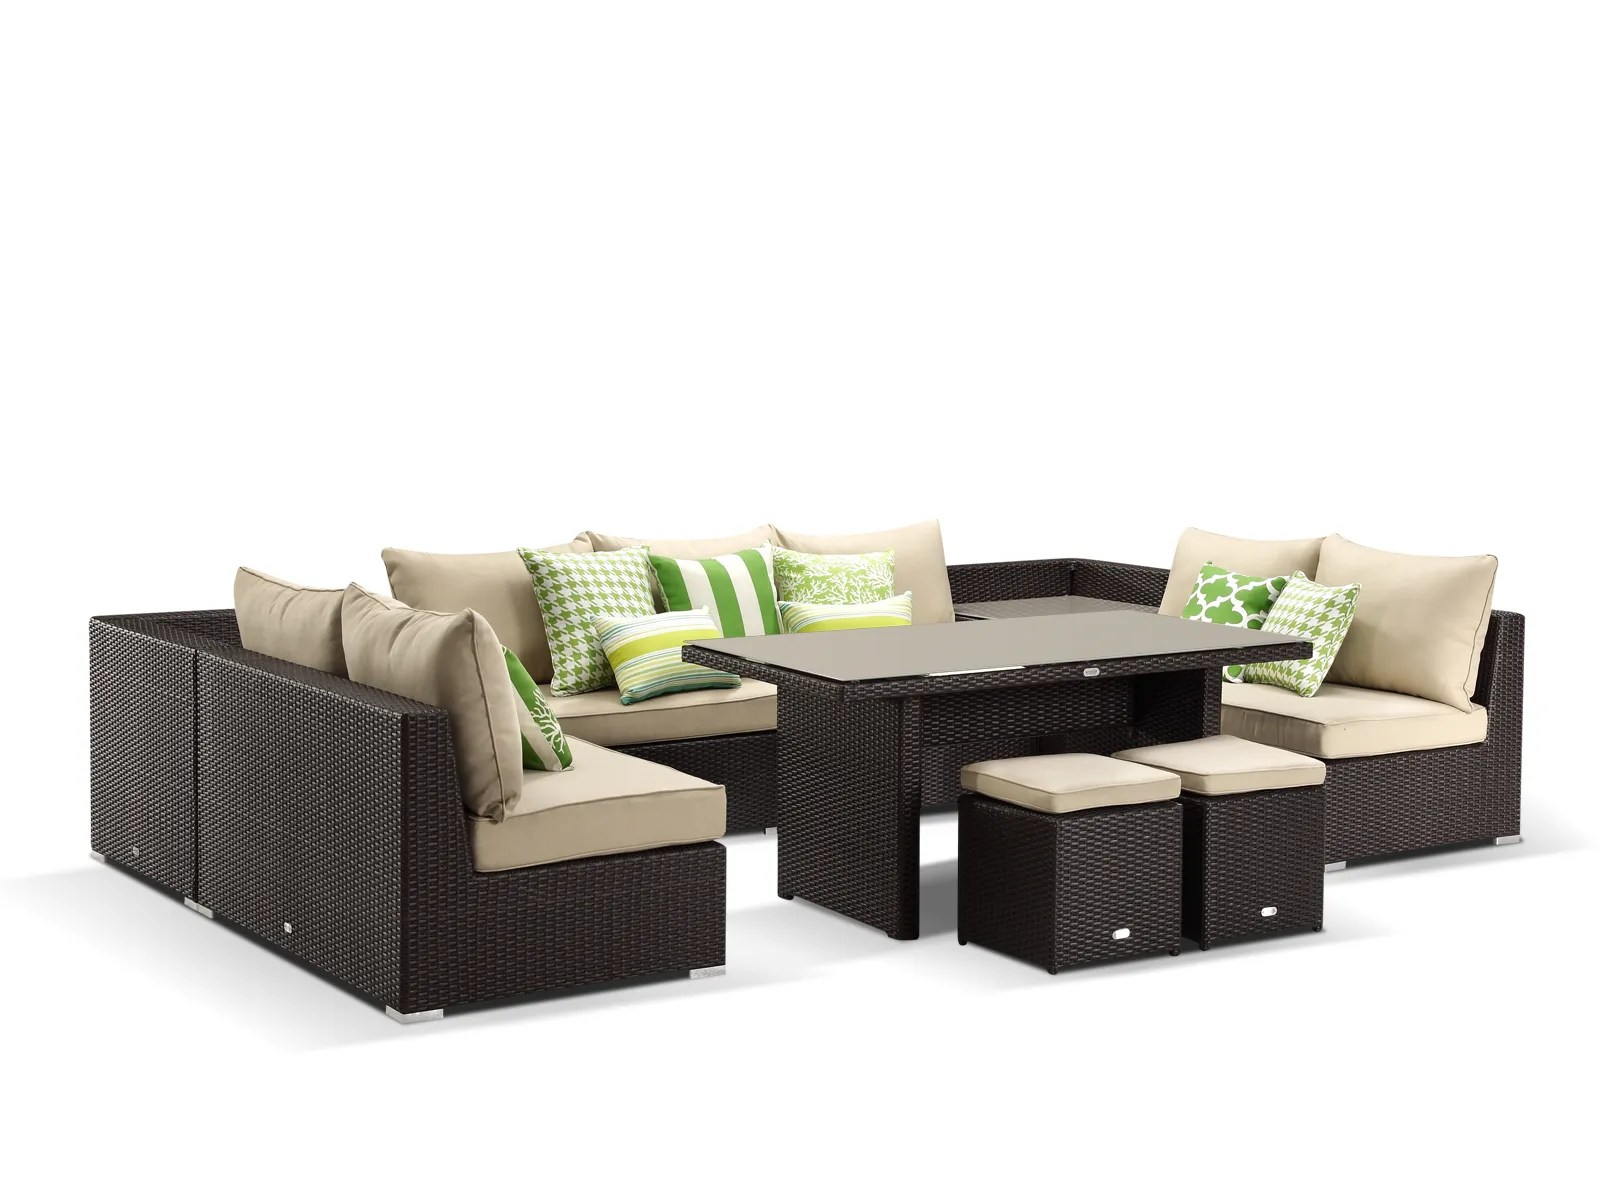 Outdoor Lounges Bunnings Outdoor Lounge Furniture Adelaide Outdoor Mosmo Living